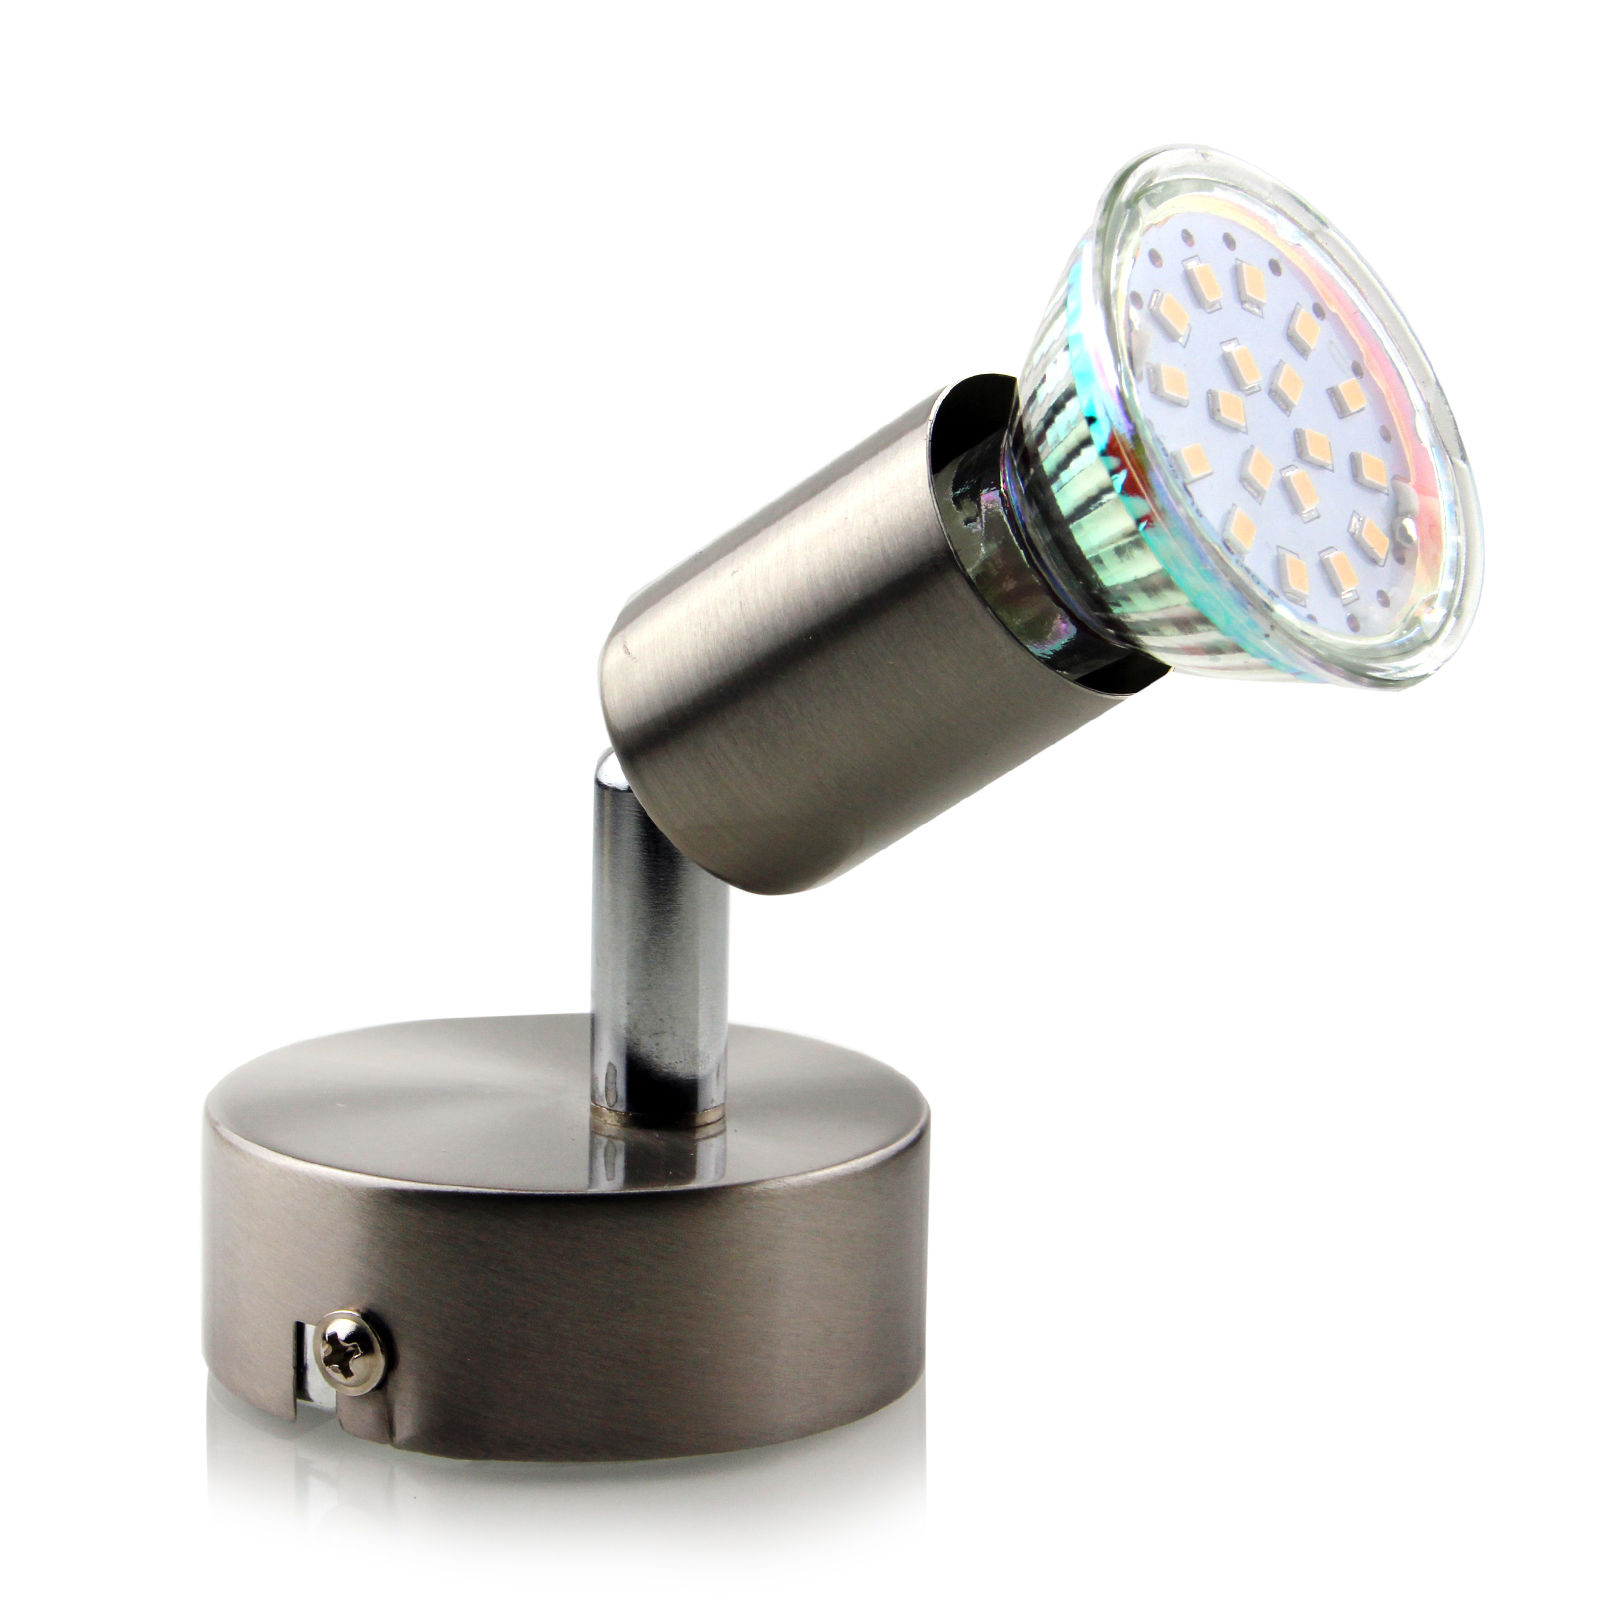 Led spot strahler 1 2 4 6 flammig deckenlampe spotlight for Deckenlampe led strahler